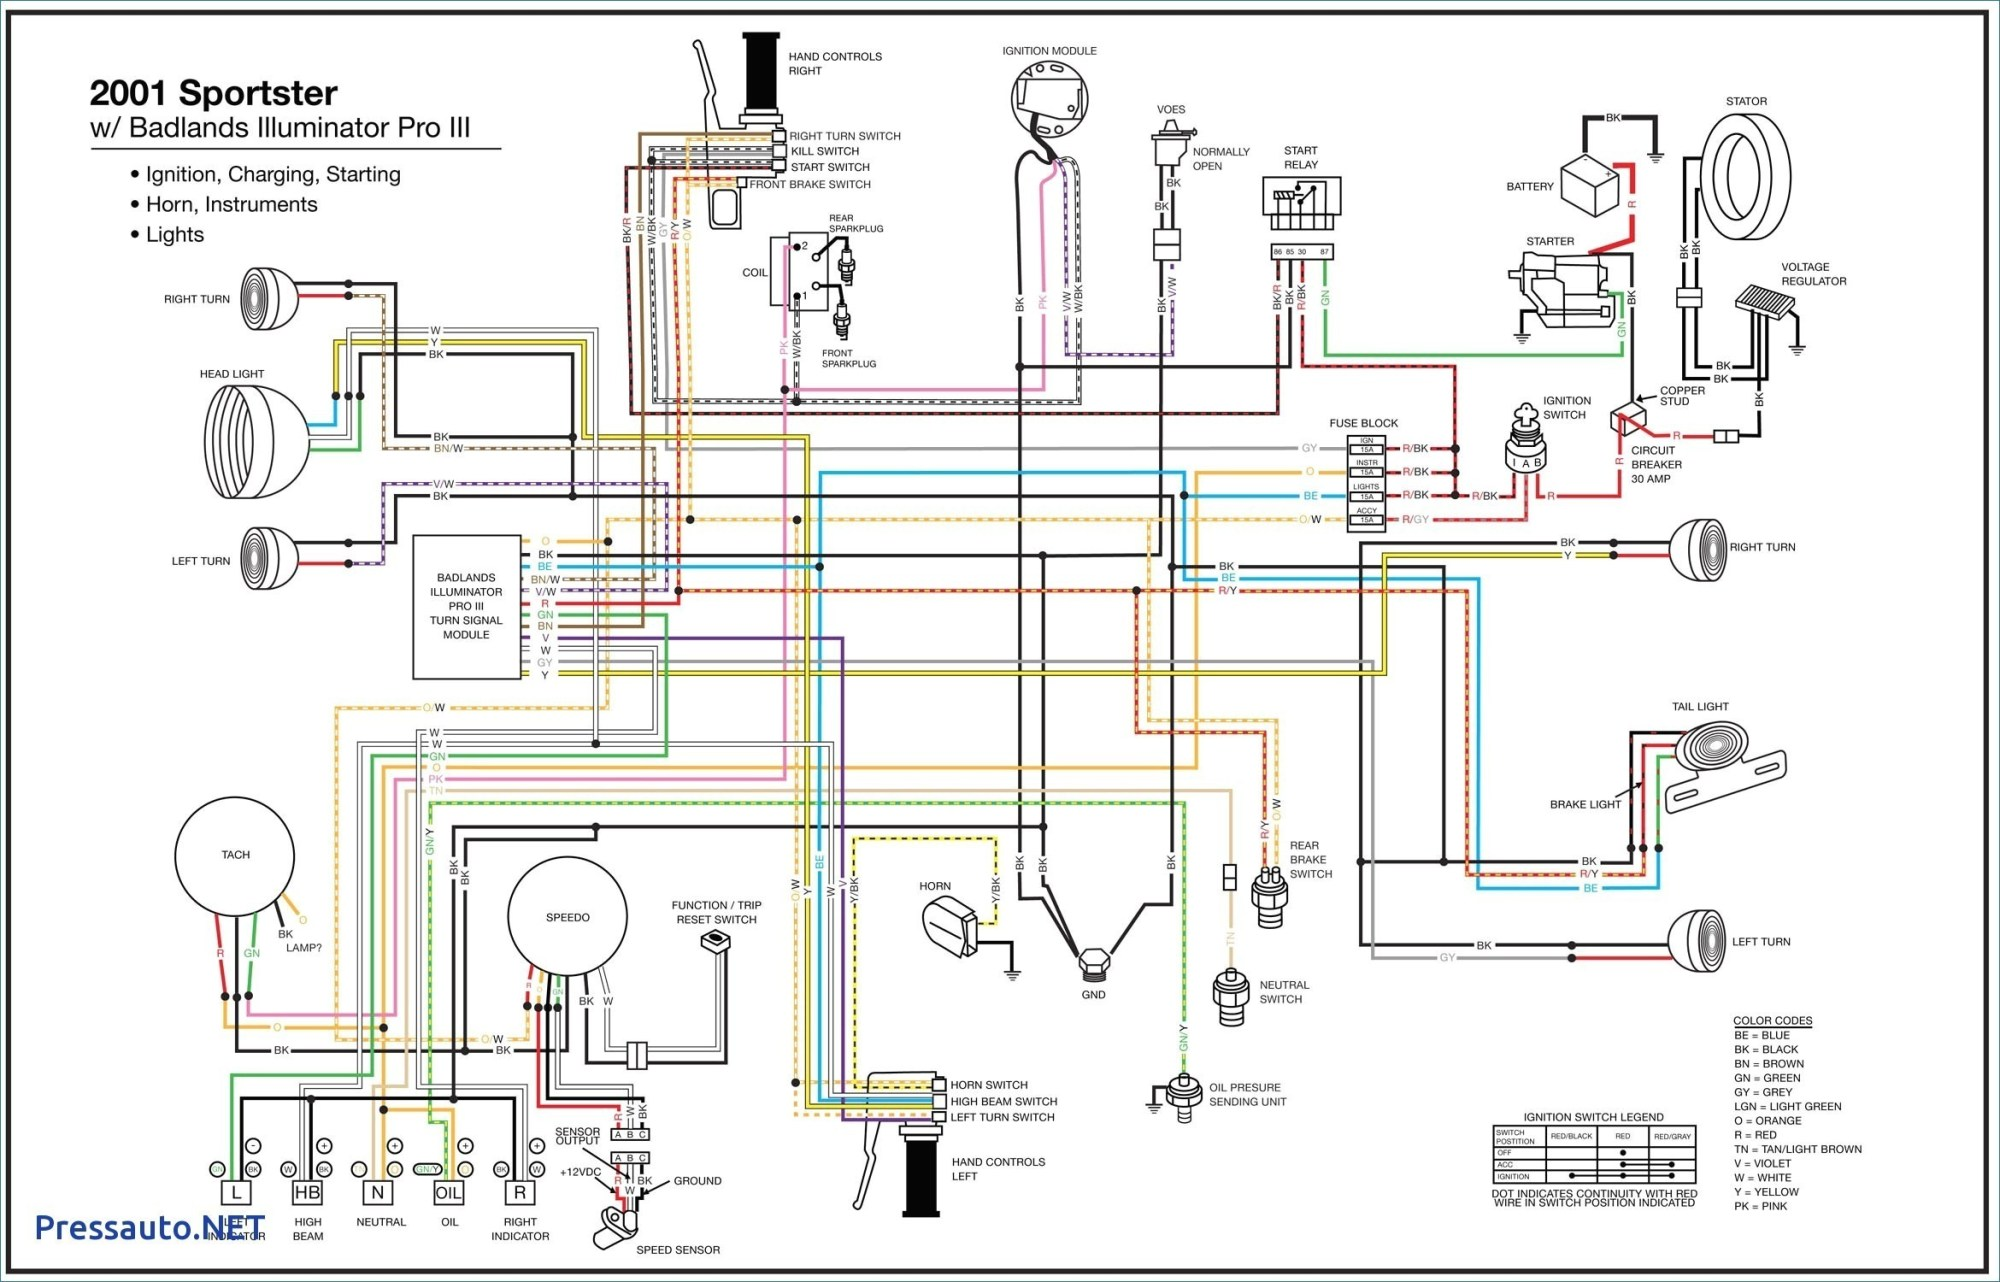 hight resolution of bmw z4 hid with relay wiring diagram wiring library bmw e30 325i starter wiring along with bmw z4 convertible top diagram